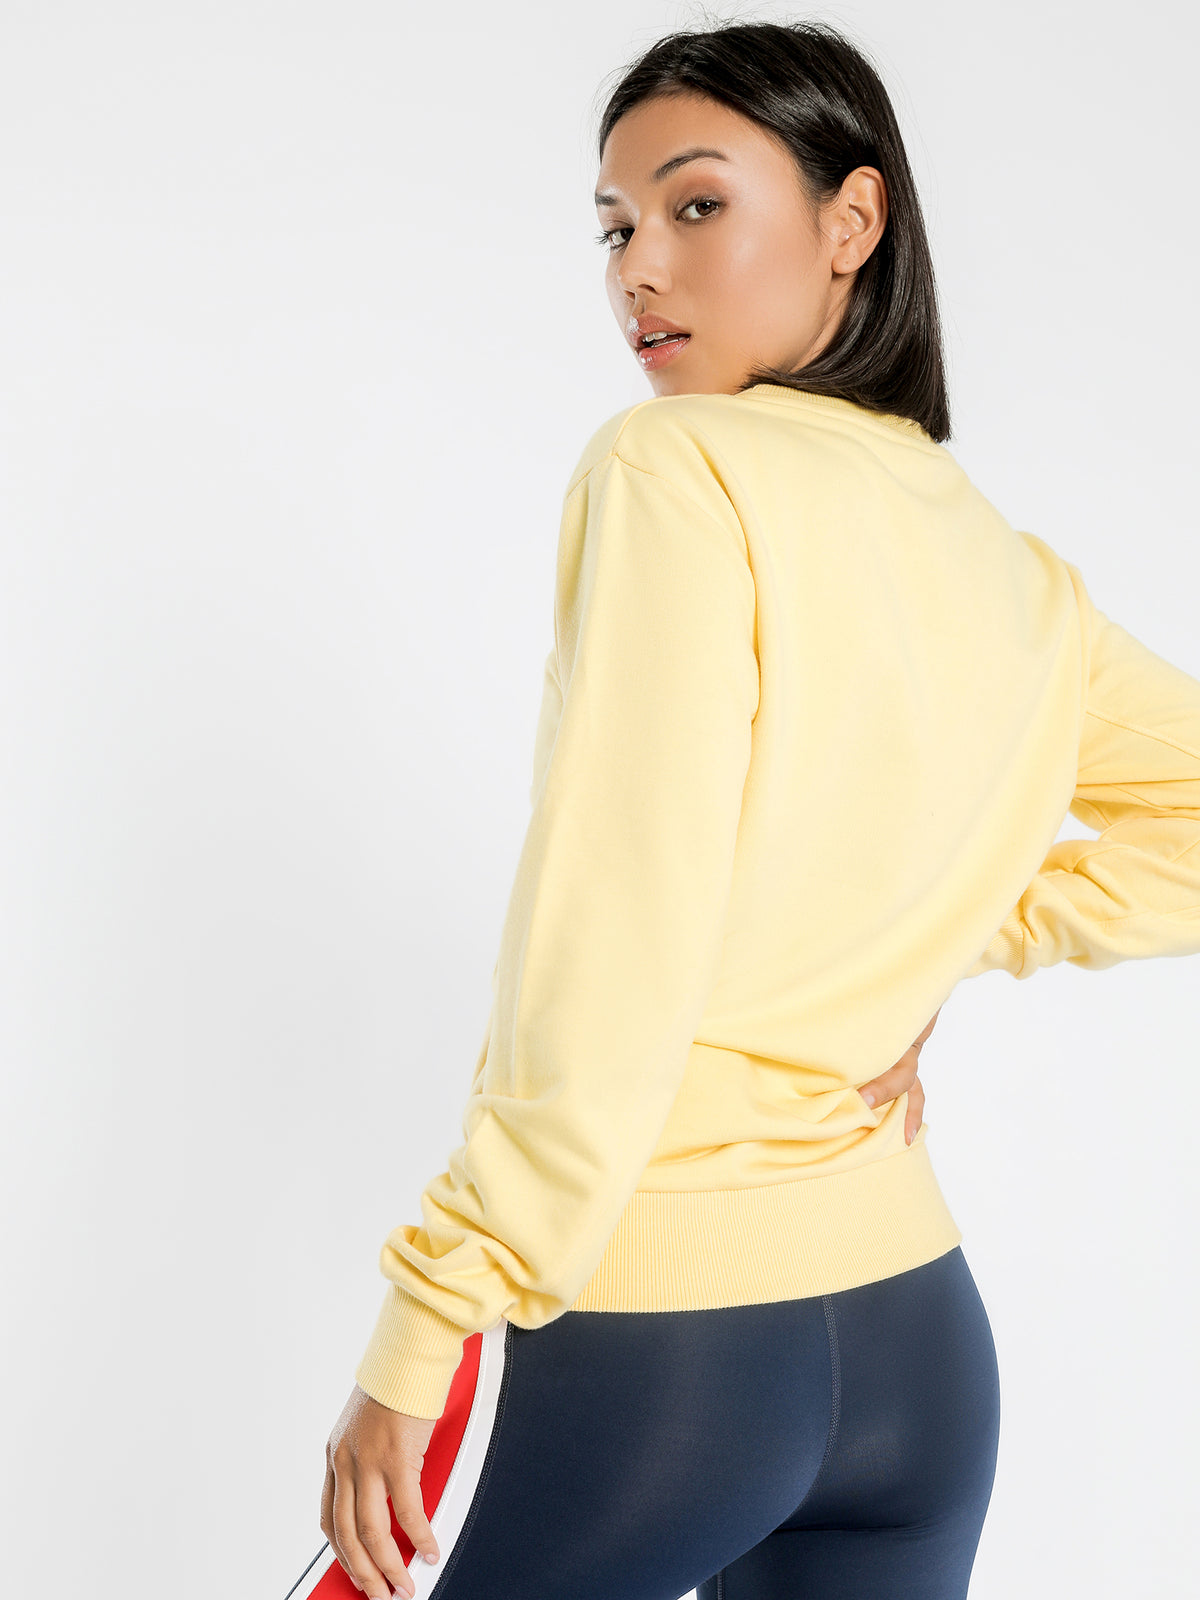 Eureka Crew Sweater in Yellow